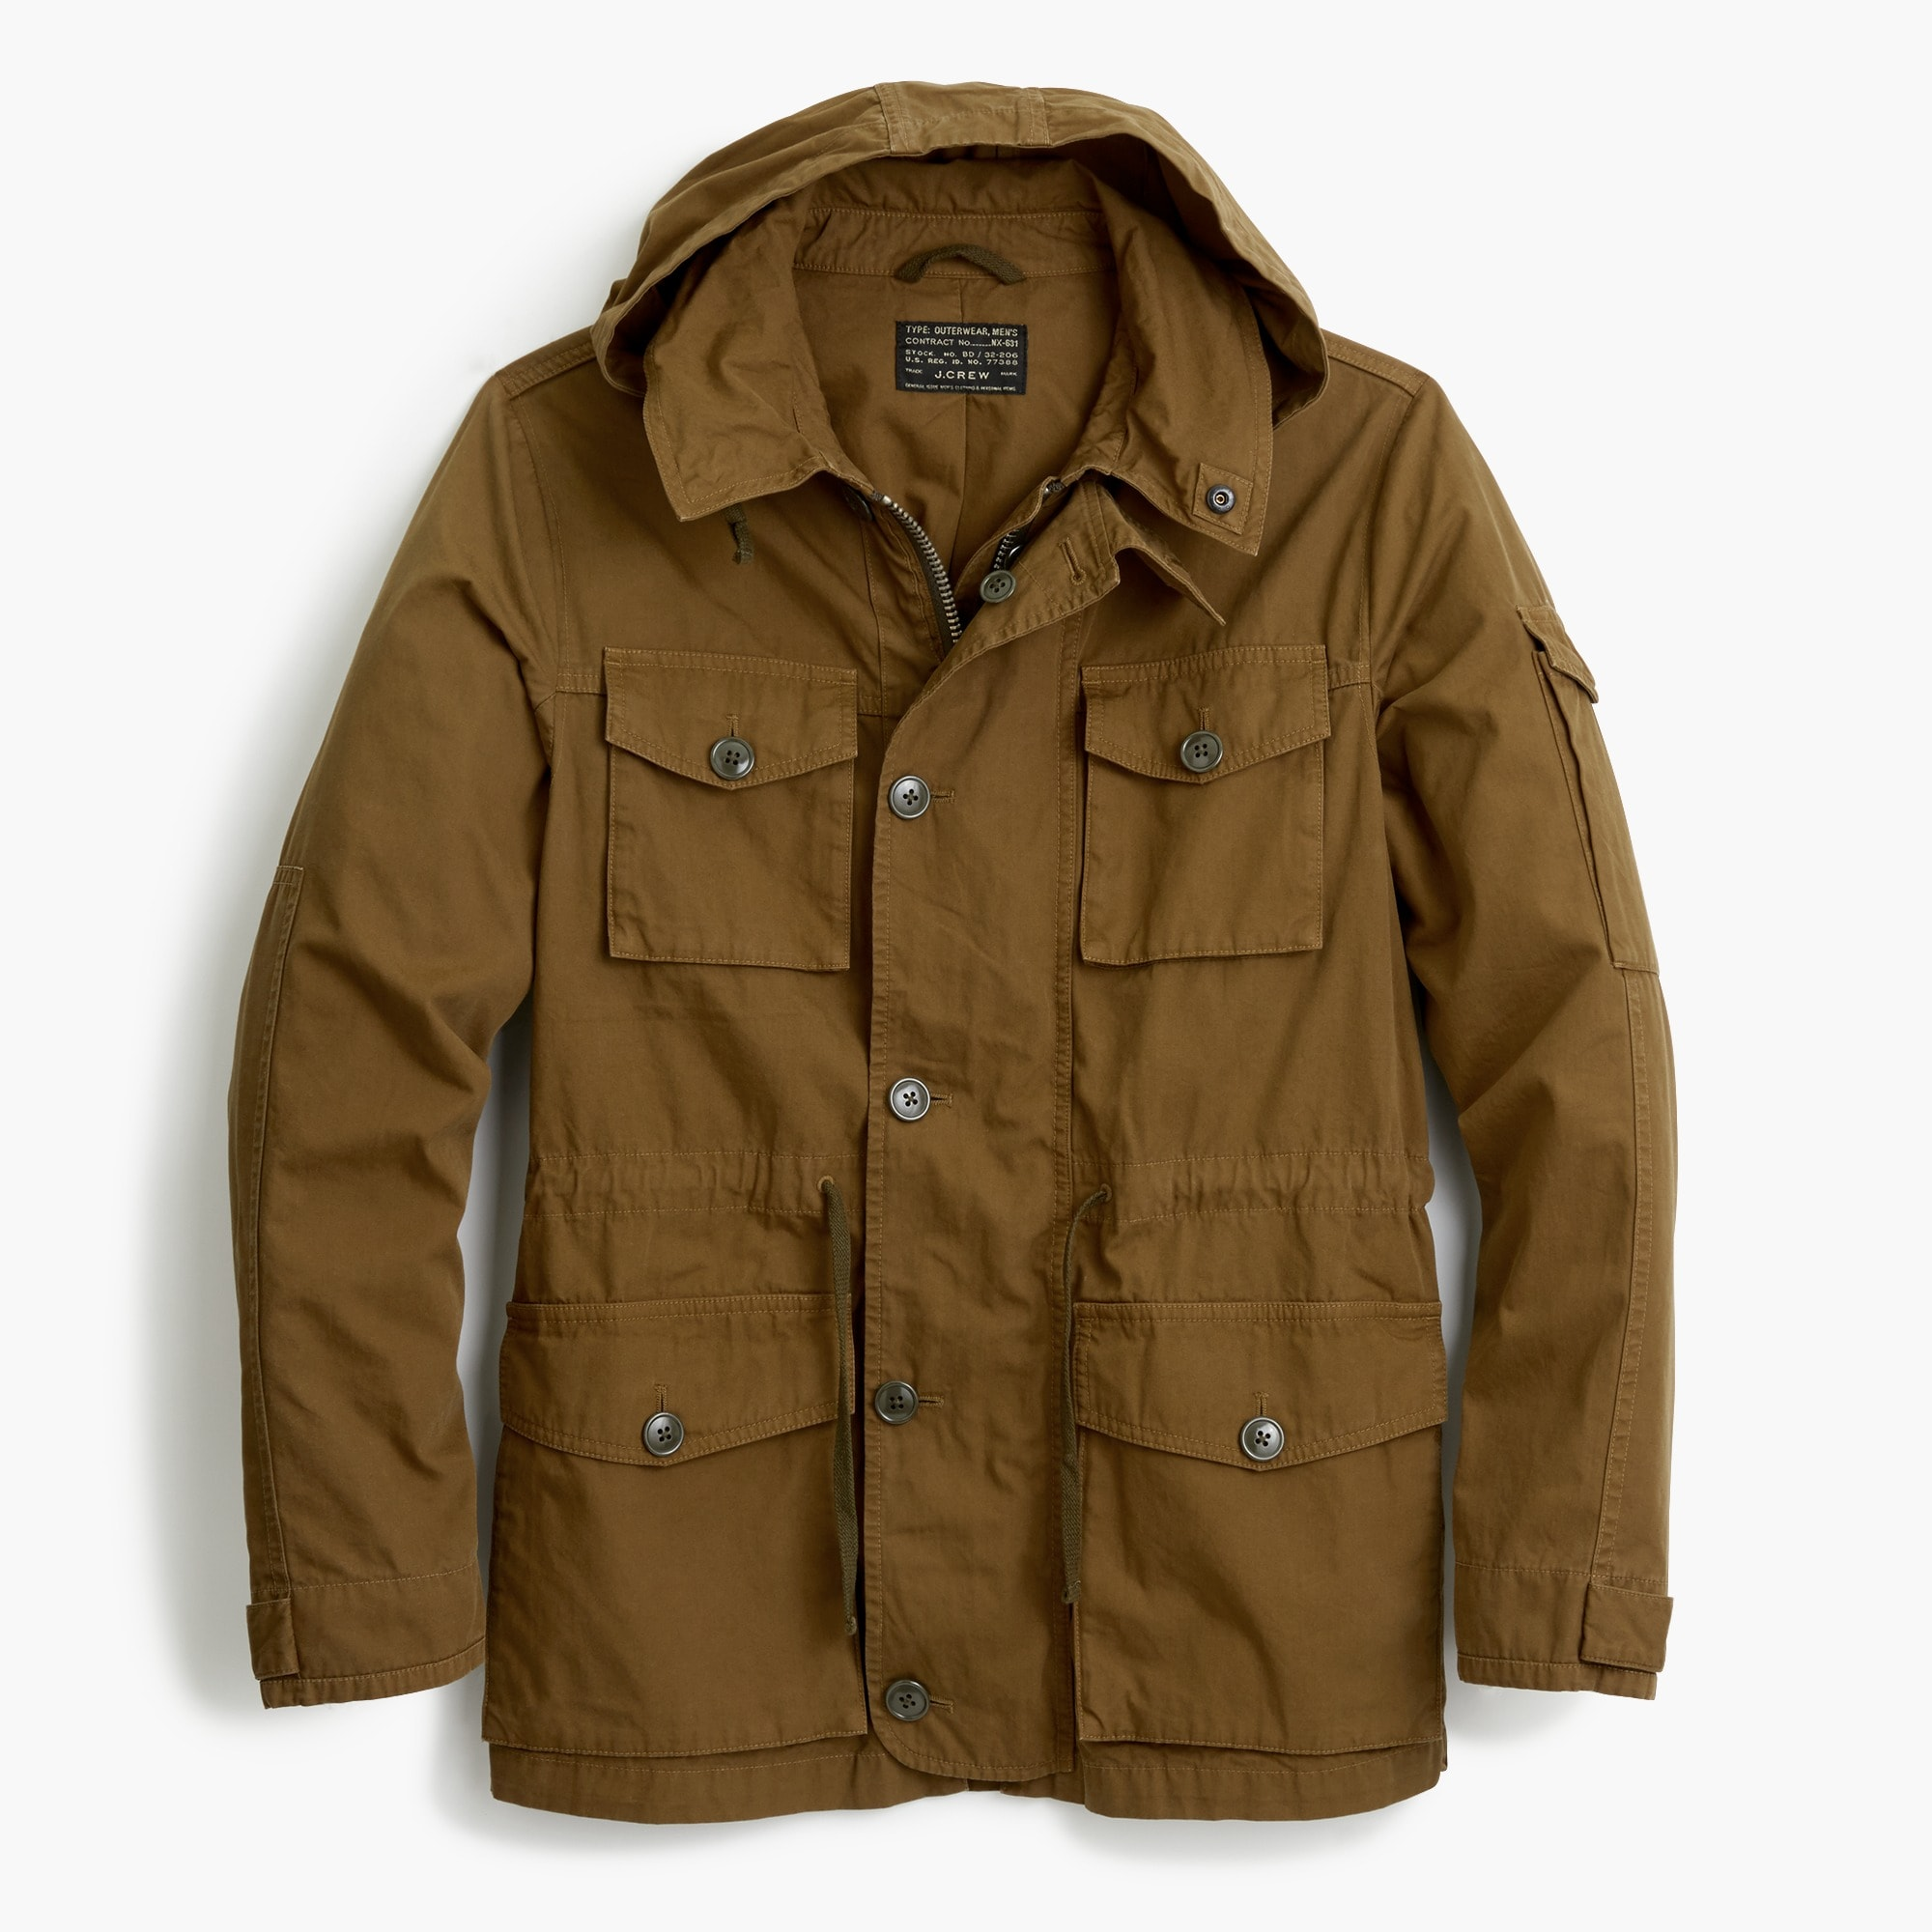 Image 2 for Tall field mechanic jacket